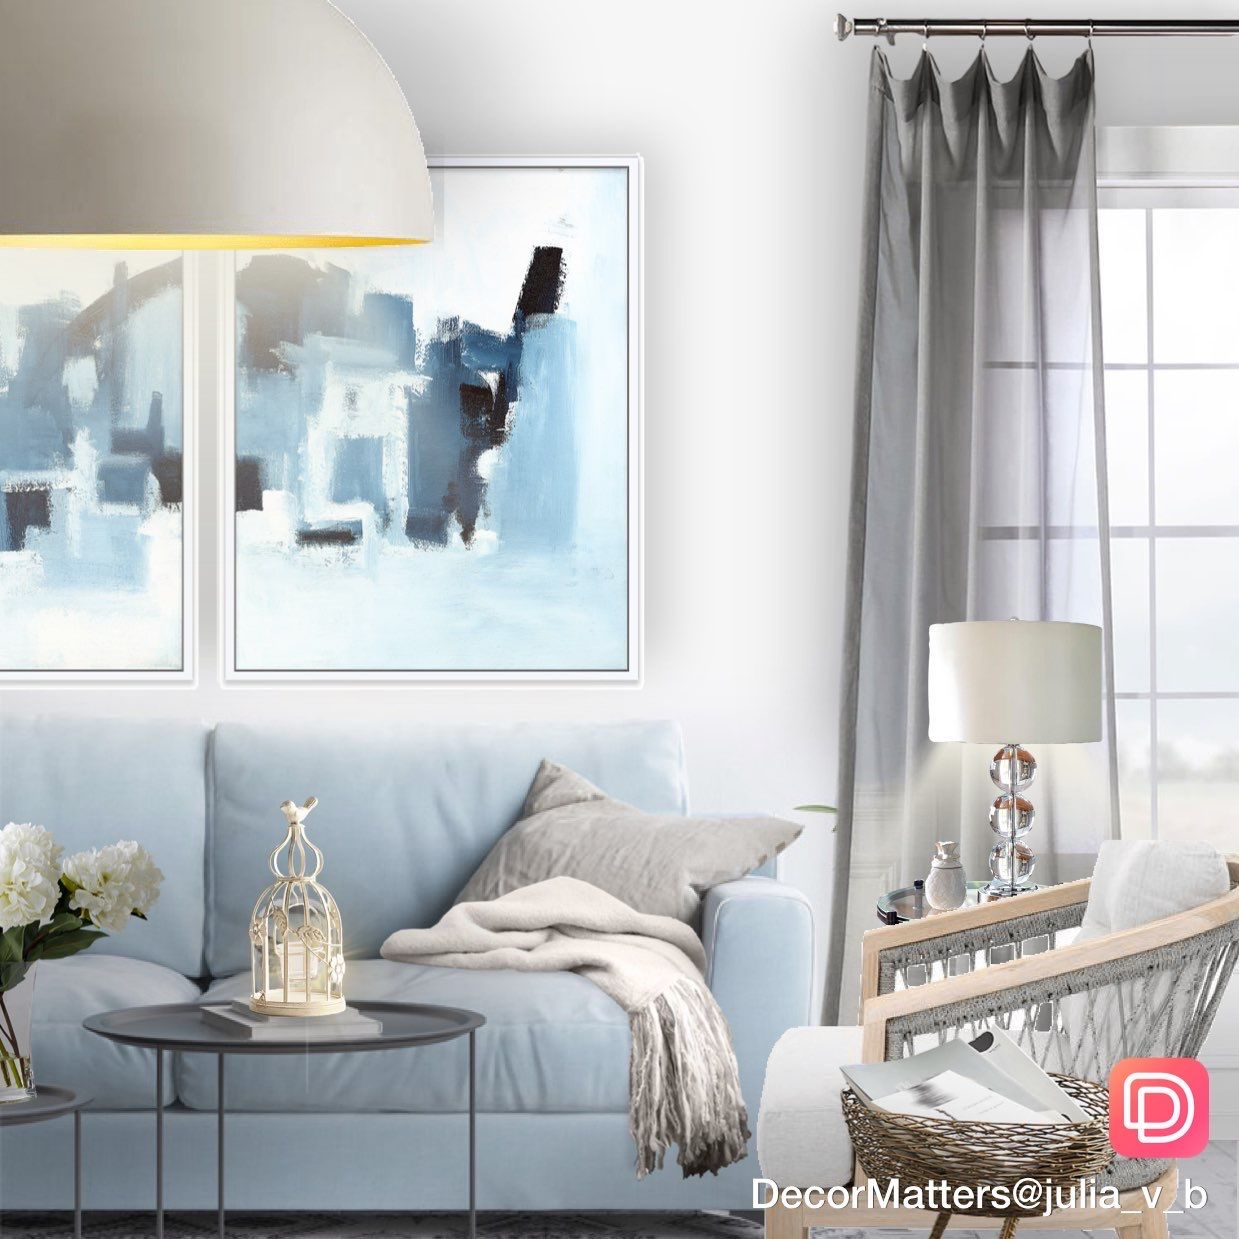 26 Relaxing Green Living Room Ideas: Light Blue And Gray Interior Color Scheme In This Simple